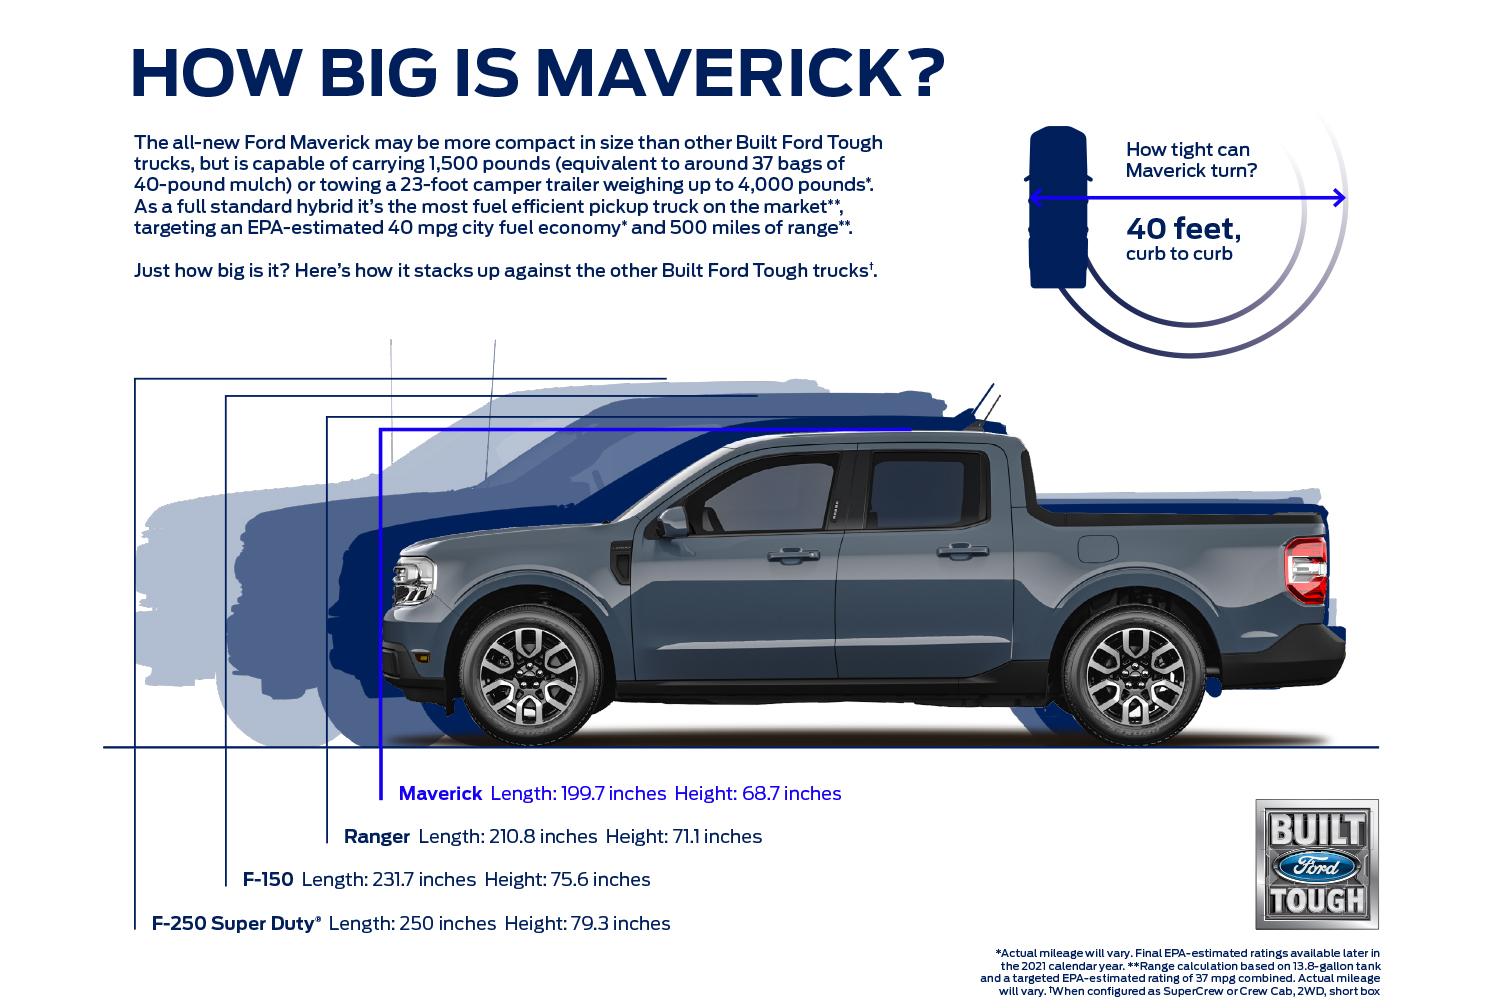 A Ford graphic that shows how big the Maverick truck is compared to other pickups